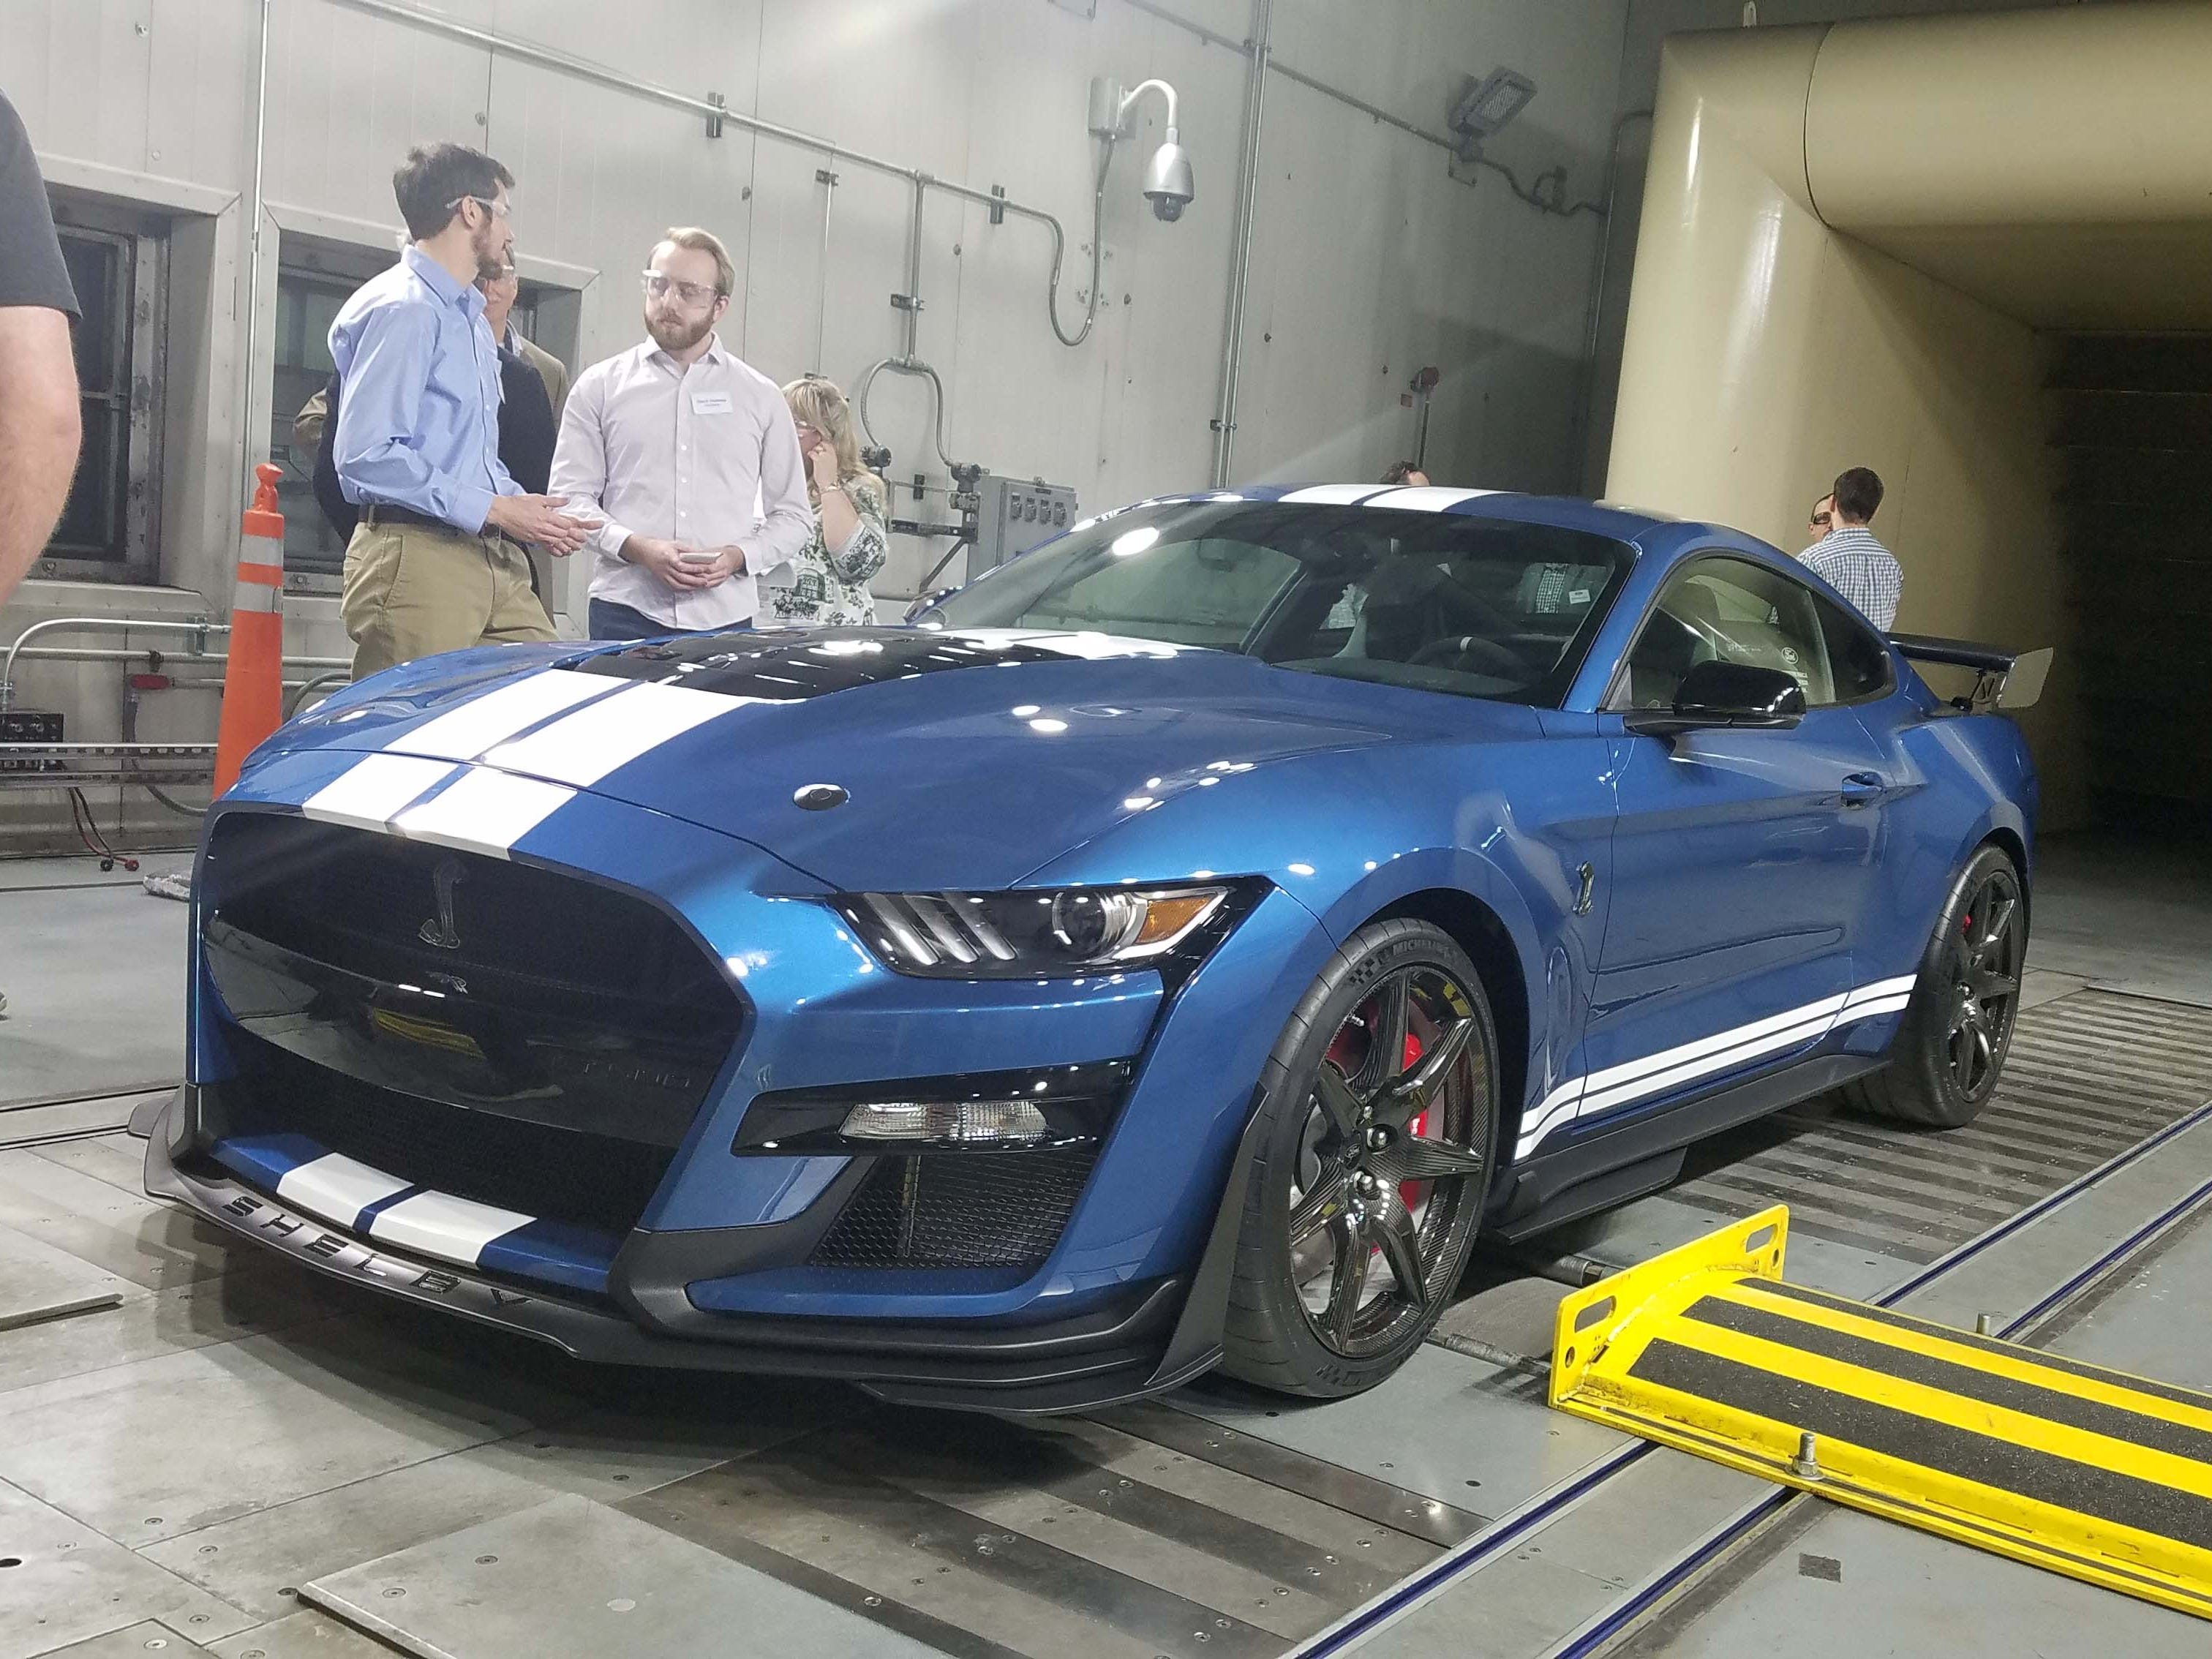 The Ford Mustang GT500 underwent extensive testing in wind tunnels (Ford's Allen Park tunnel pictured), supercomputers, and simulators before ever hitting the race track.